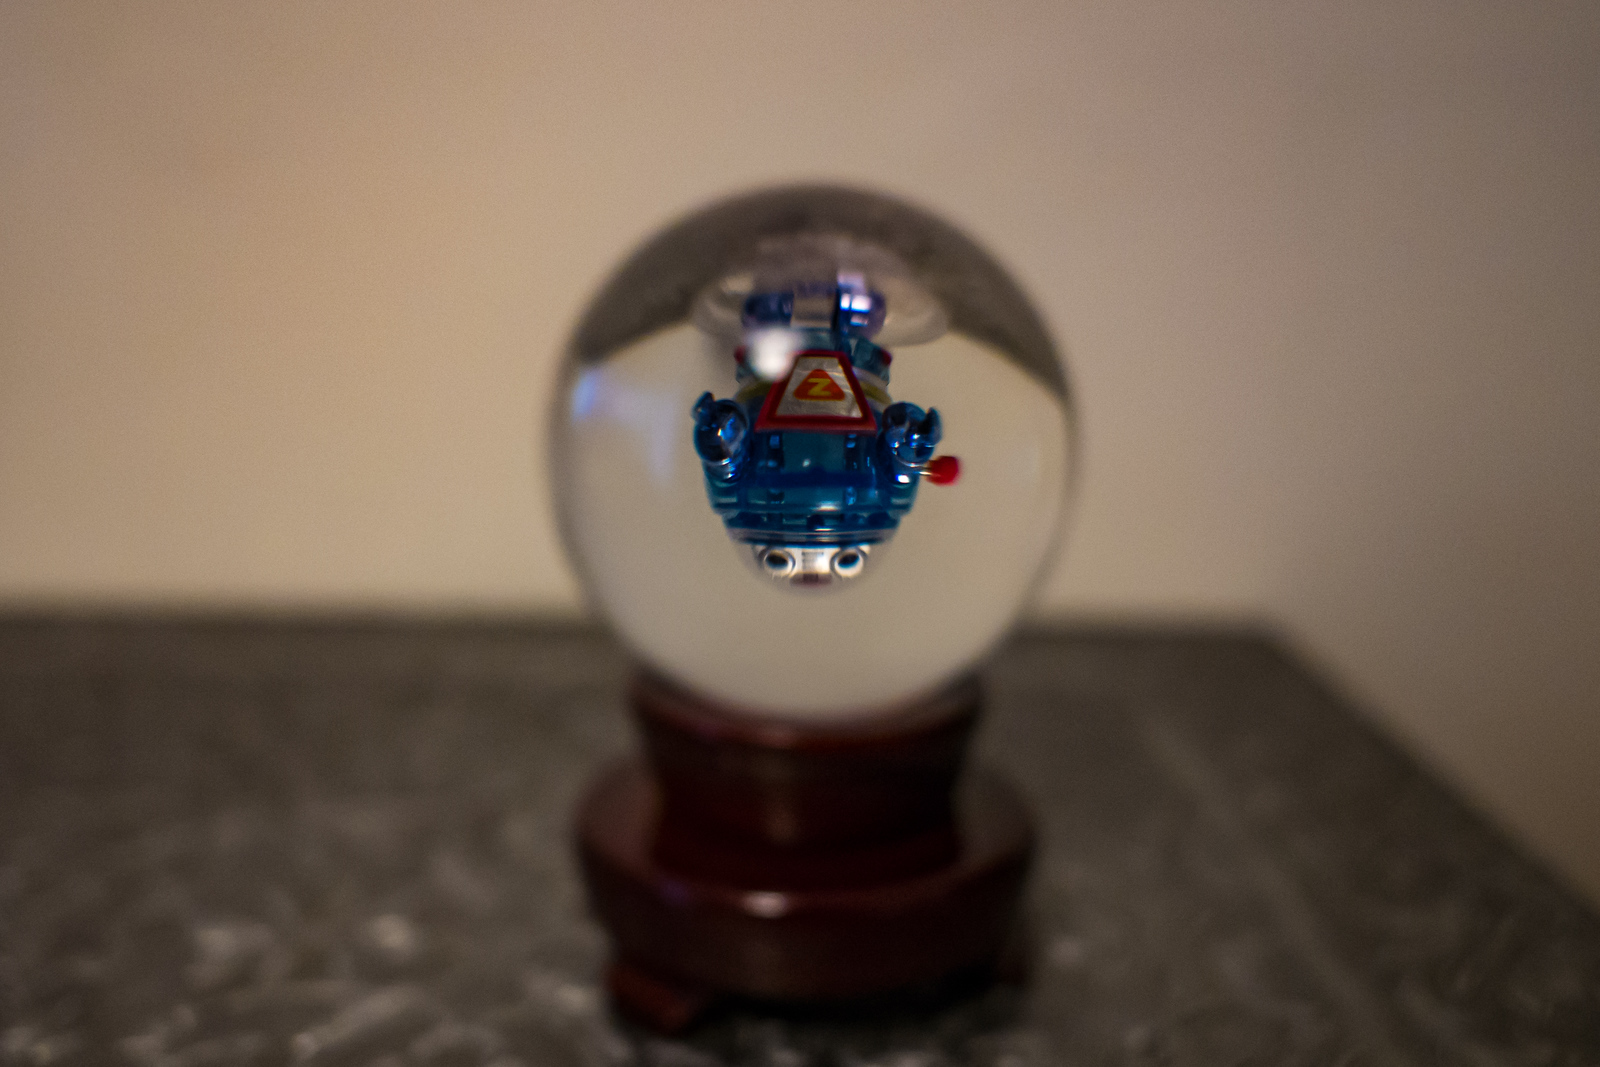 Revisiting my subject from two years ago. Thought crystal ball made it little different